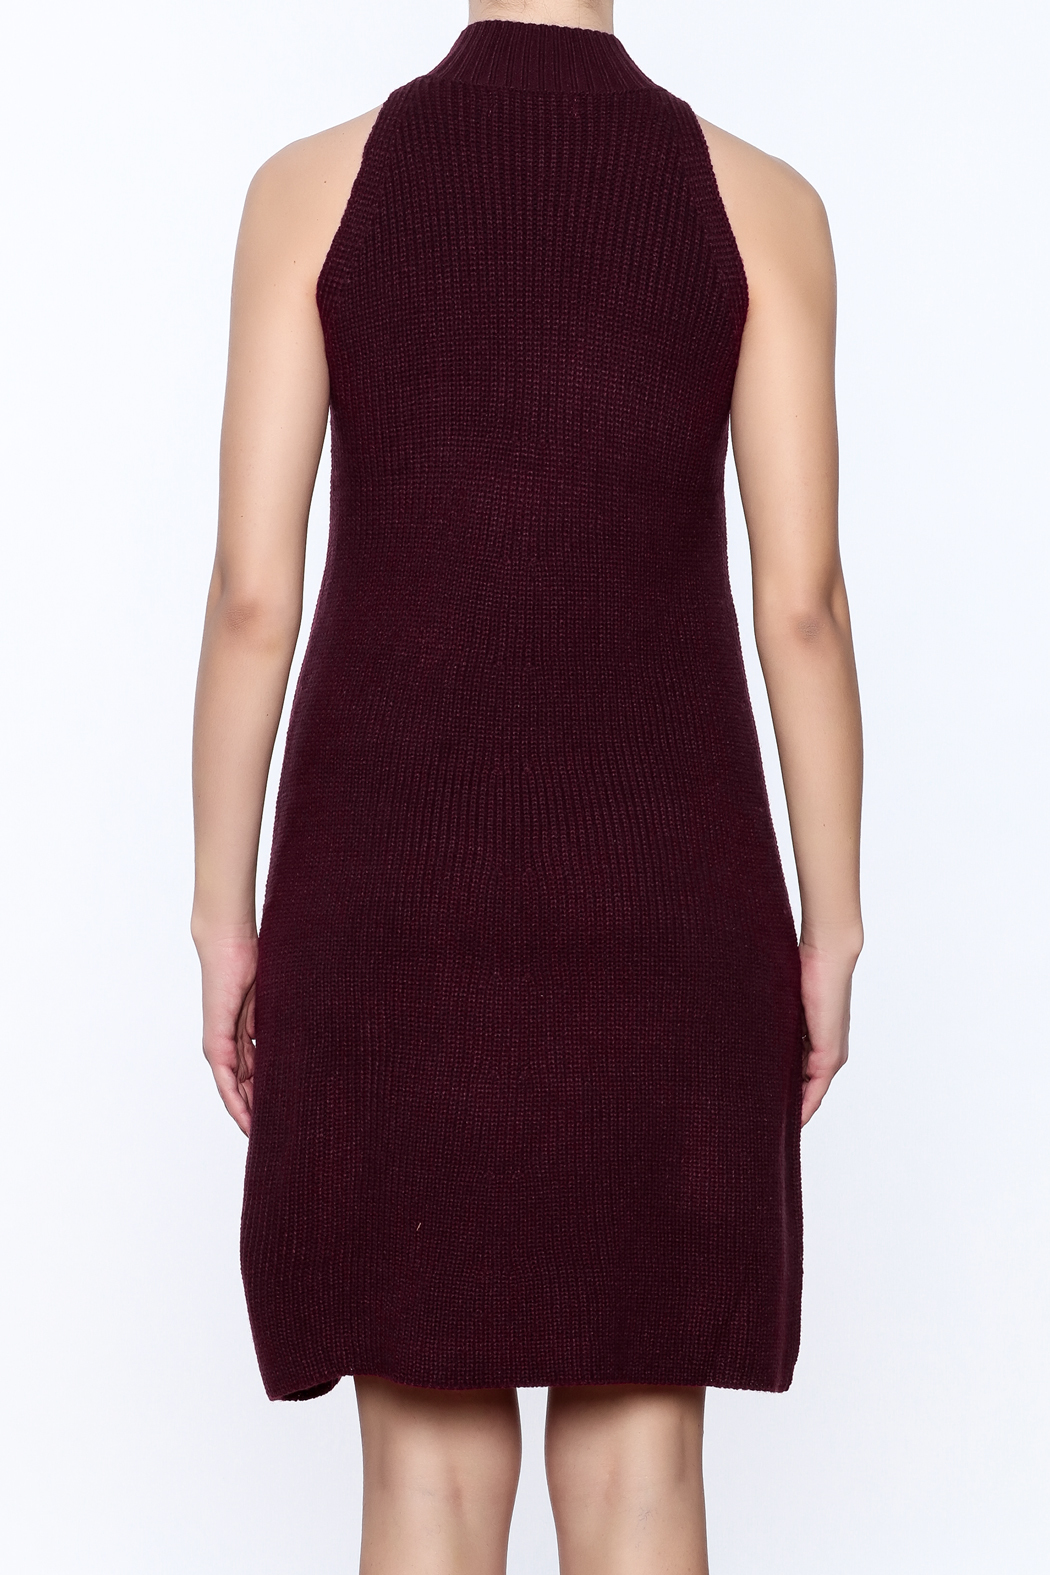 Bishop + Young Scarlett Sweater Dress - Back Cropped Image